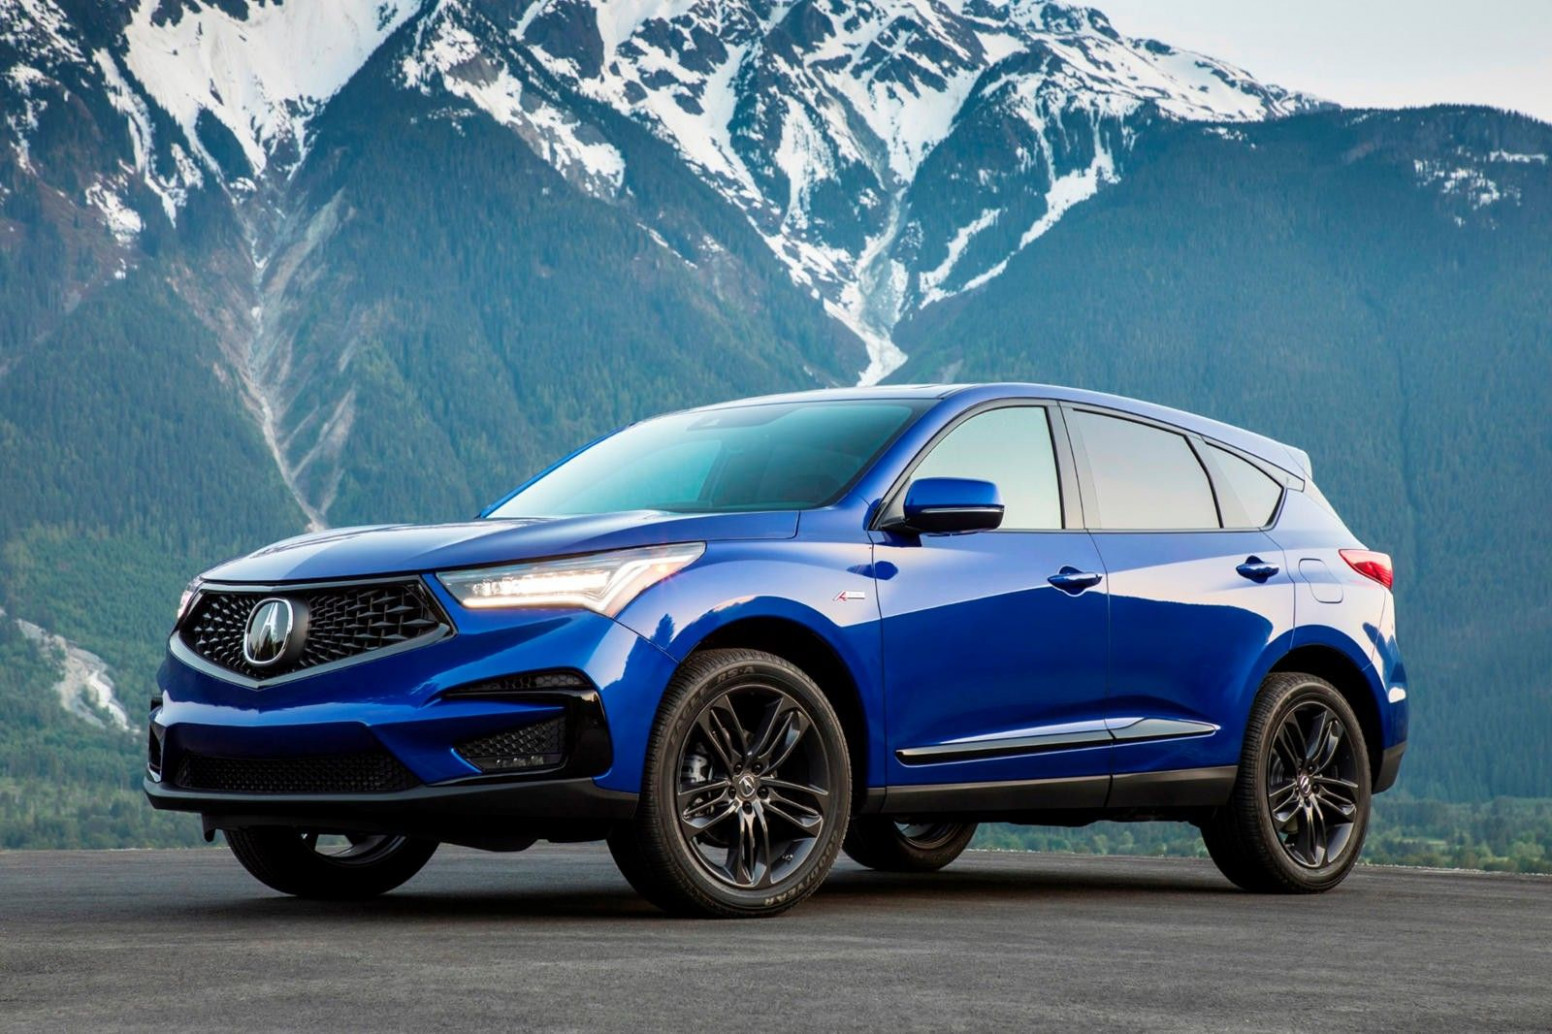 9 Acura RDX Review, Ratings, MPG and Prices | TheCarHP